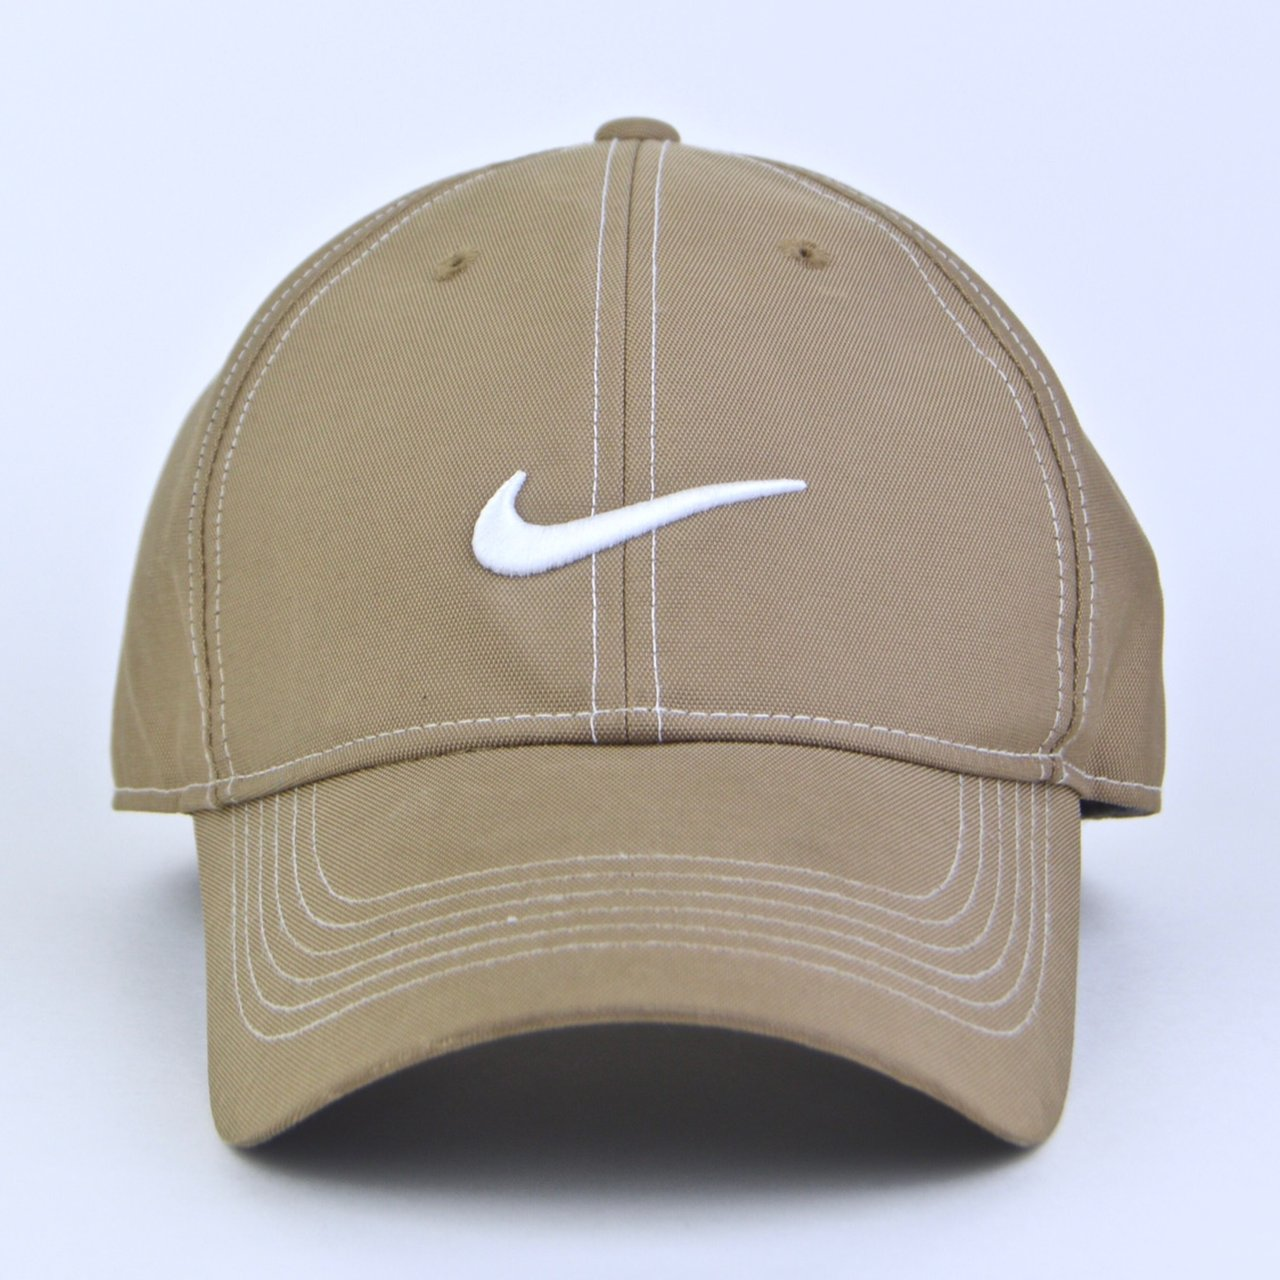 6cf659c4d6166 ... ireland nike adjustable golf hat mens 0 4e844 91465